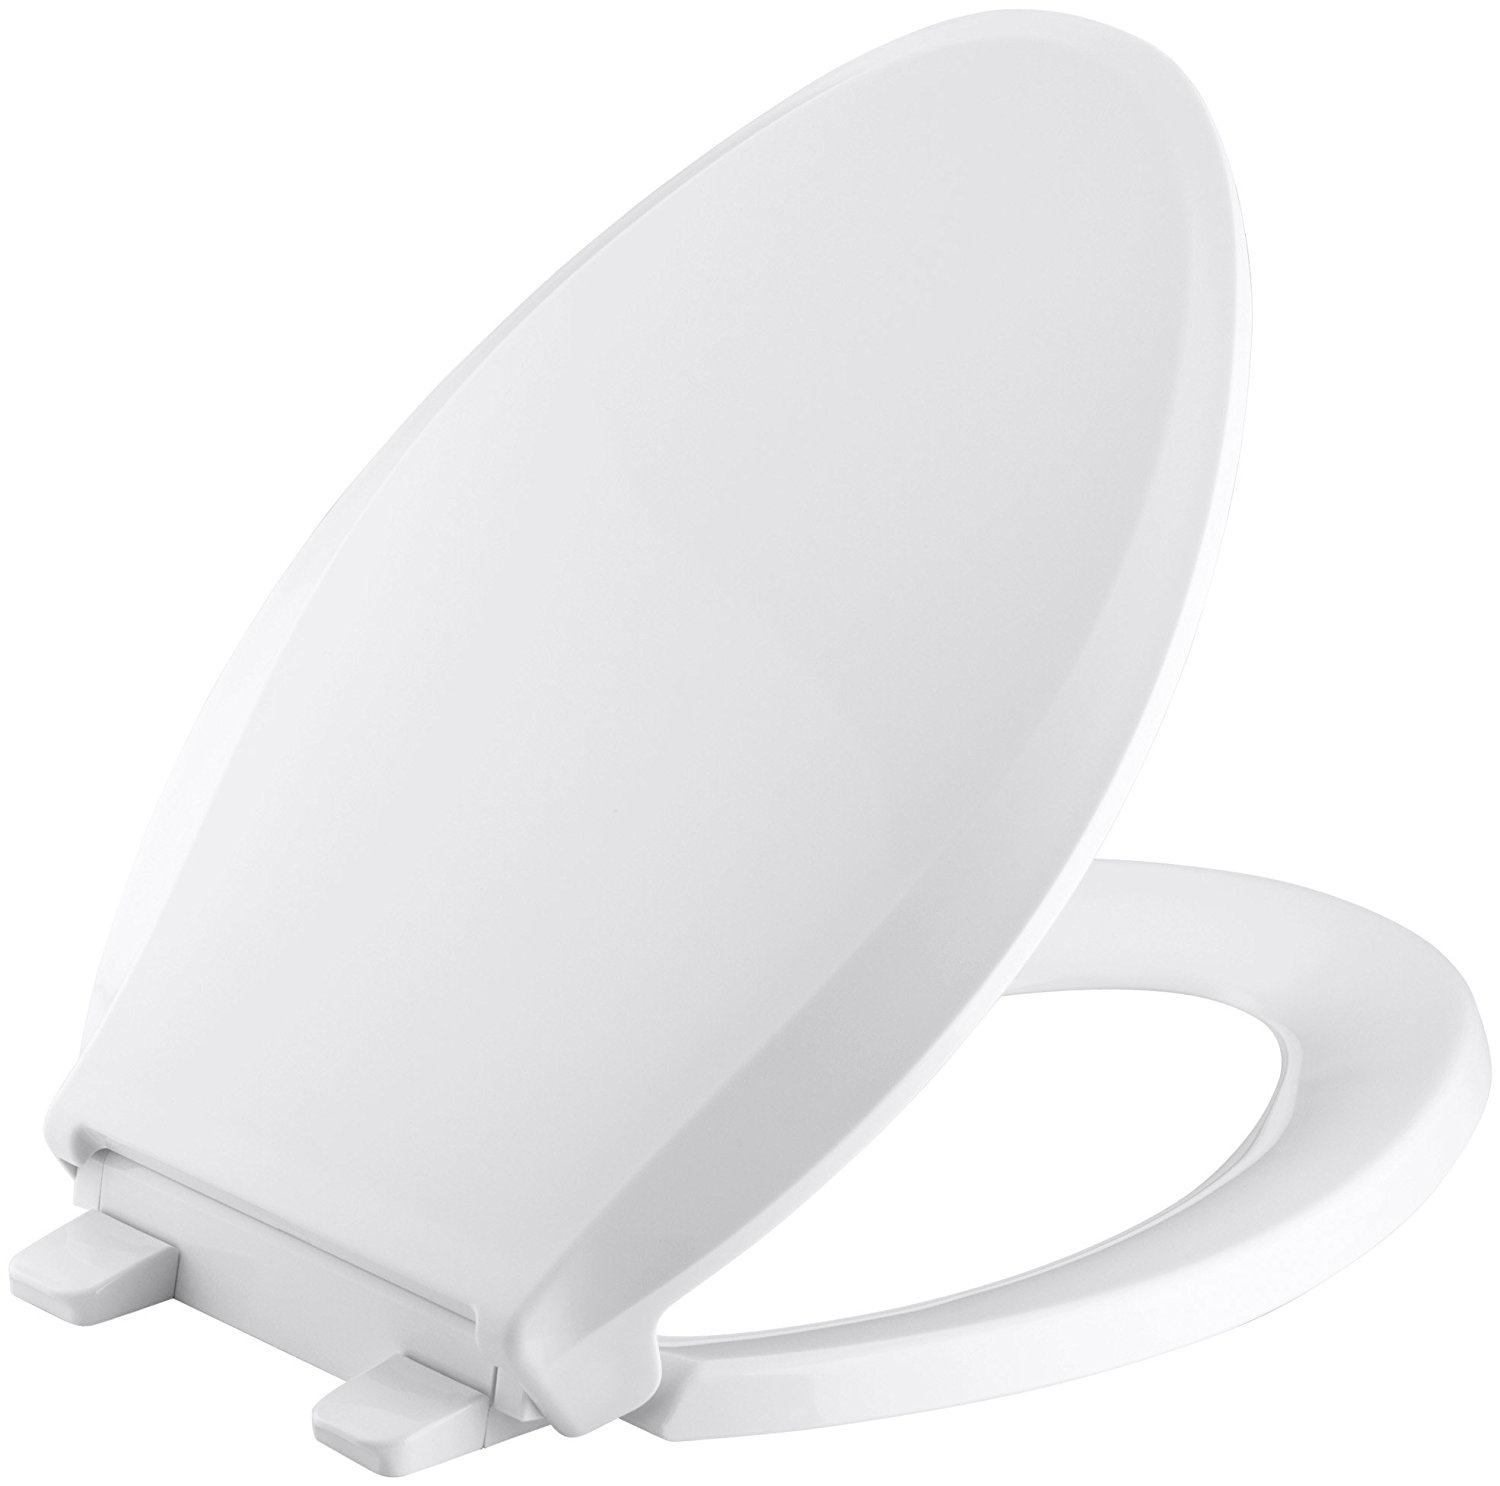 Padded Elongated Toilet Seat